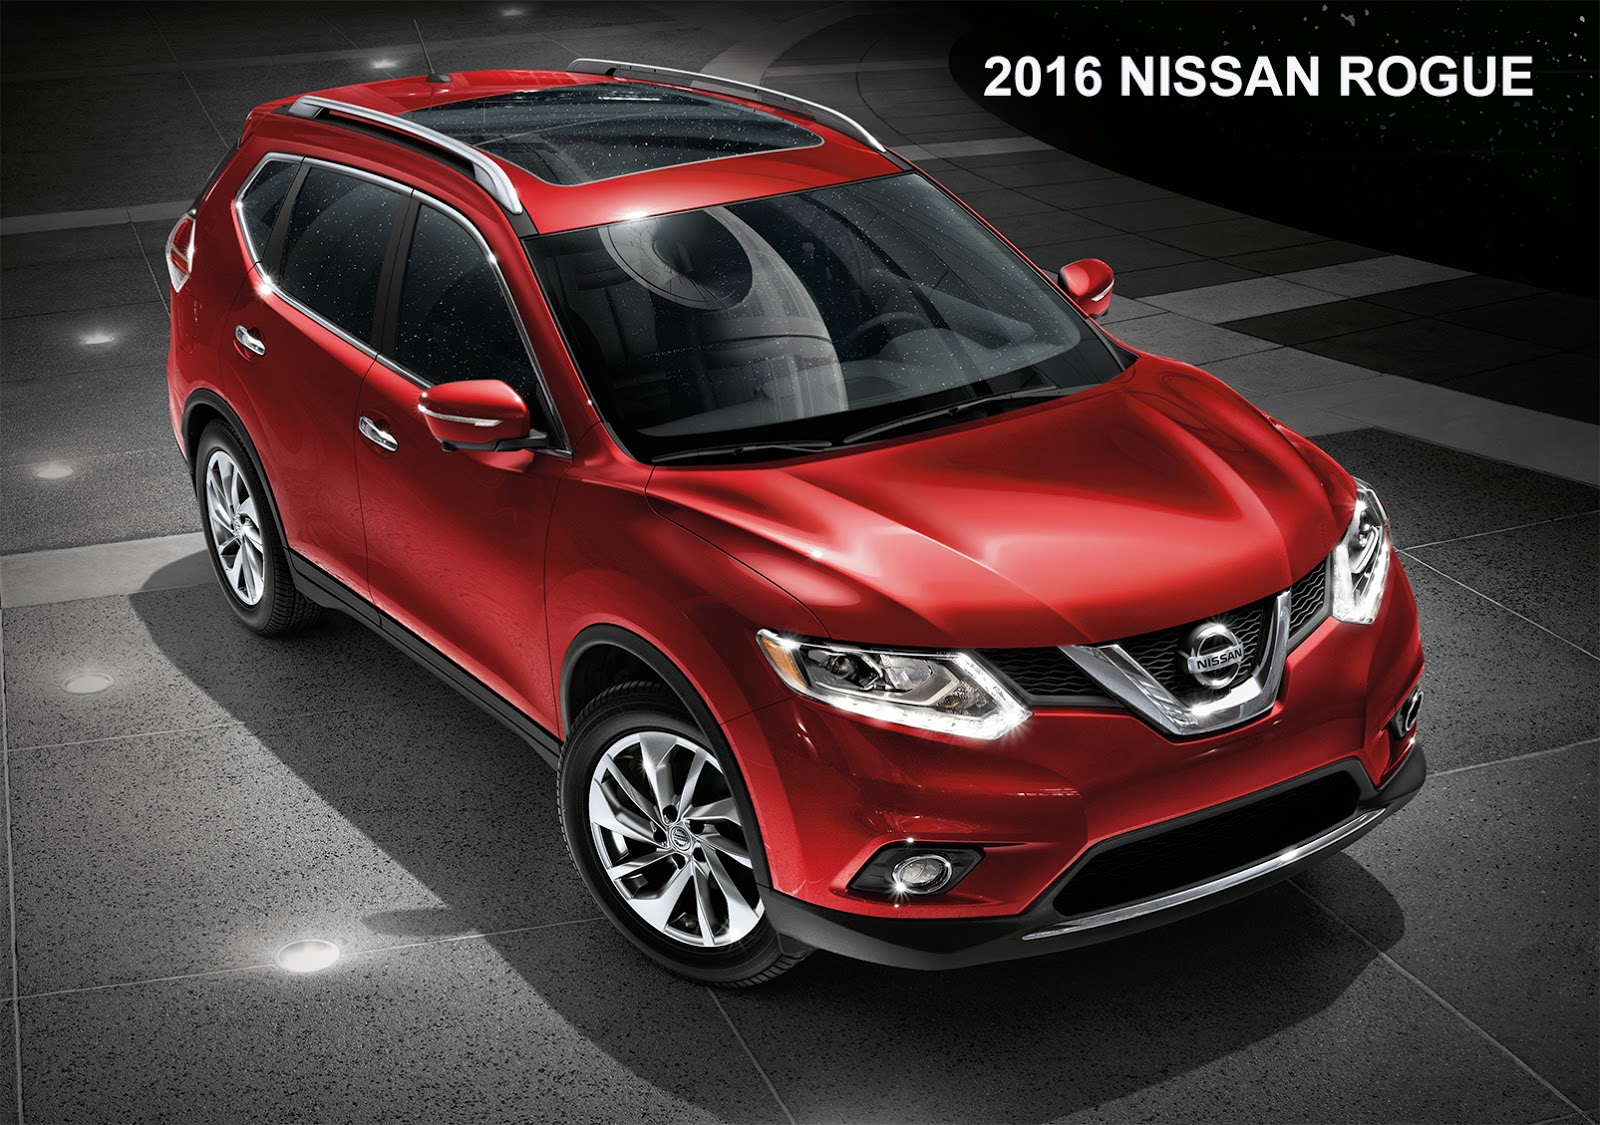 2017 nissan rogue facelift apparently makes early appearance in ad. Black Bedroom Furniture Sets. Home Design Ideas